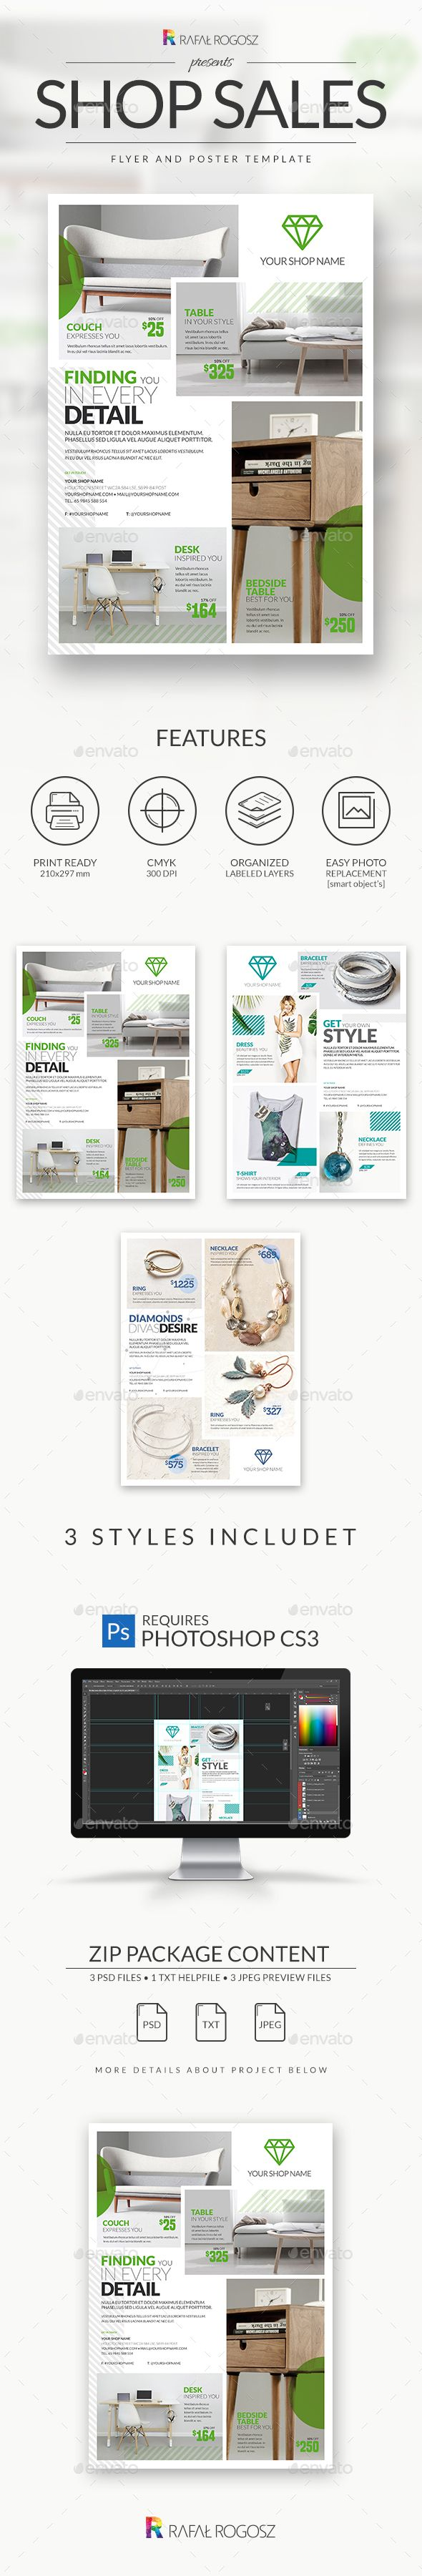 Best Flyer Images On   Brochures Infographic And